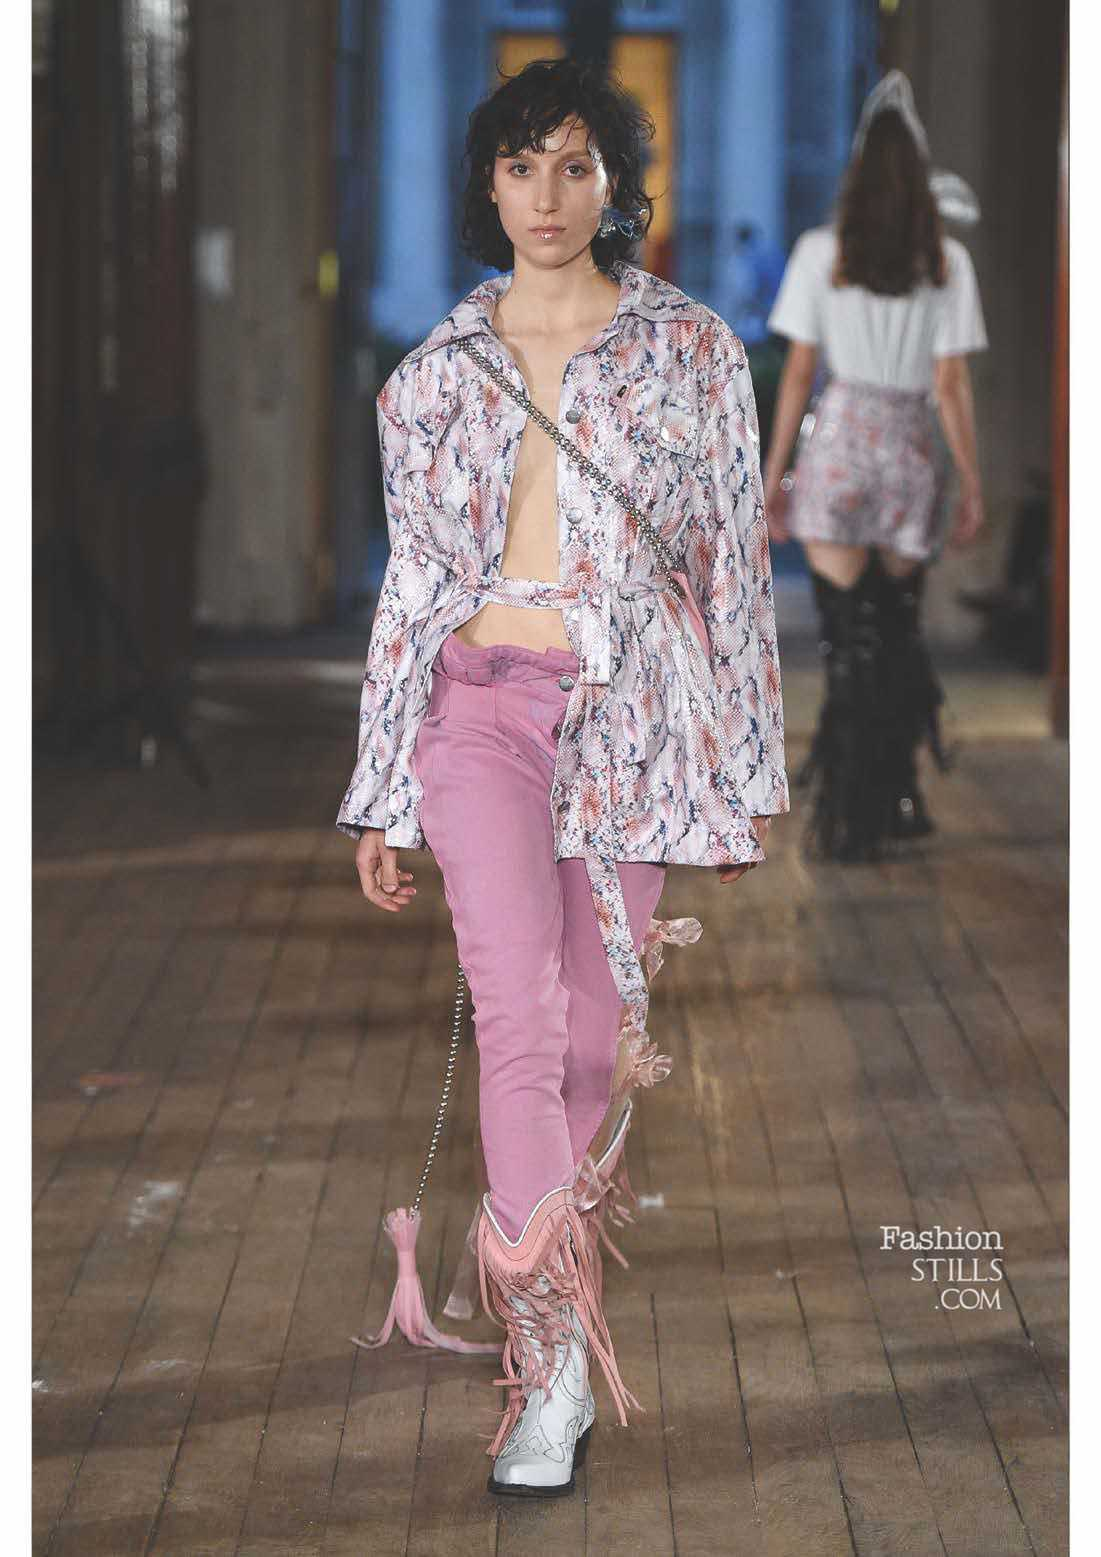 Neith Nyer_1513681575_5e_look-book-_-press-release-ss18-neith-nyer-015.jpg